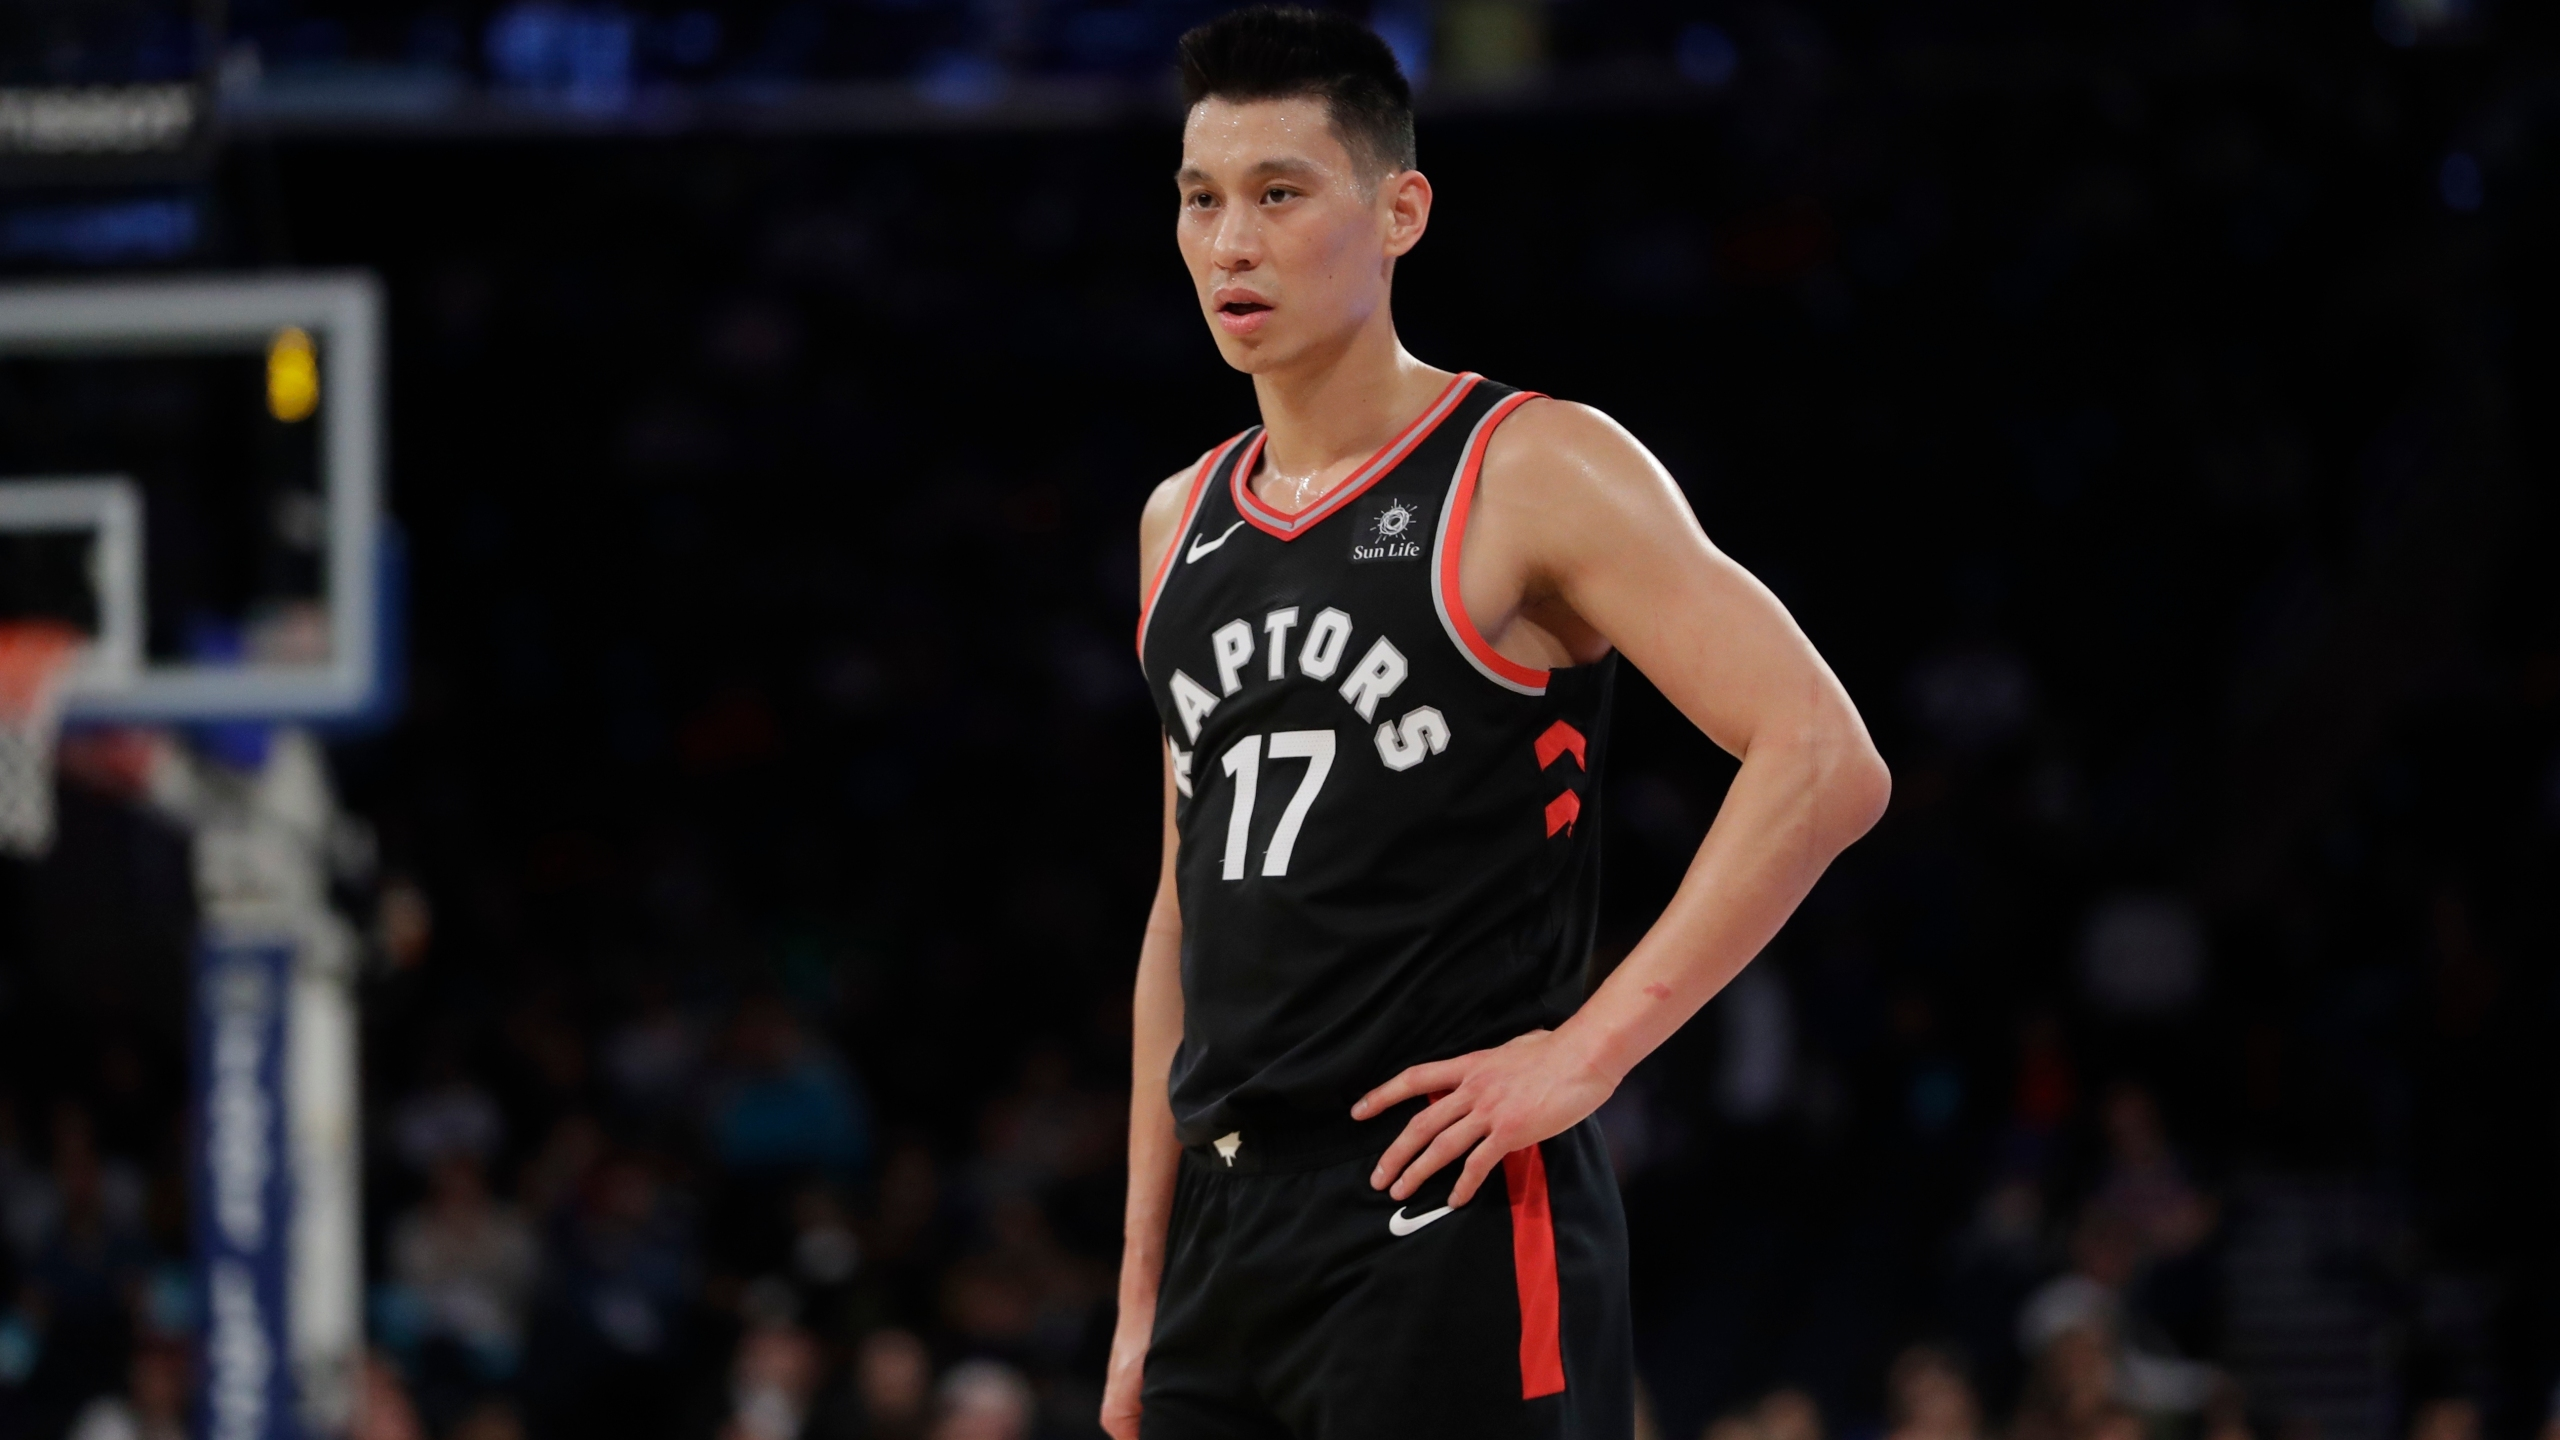 In this March 28, 2019, file photo, Toronto Raptors' Jeremy Lin stands on the court during the second half of the team's NBA basketball game against the New York Knicks in New York. (AP Photo/Frank Franklin II, File)